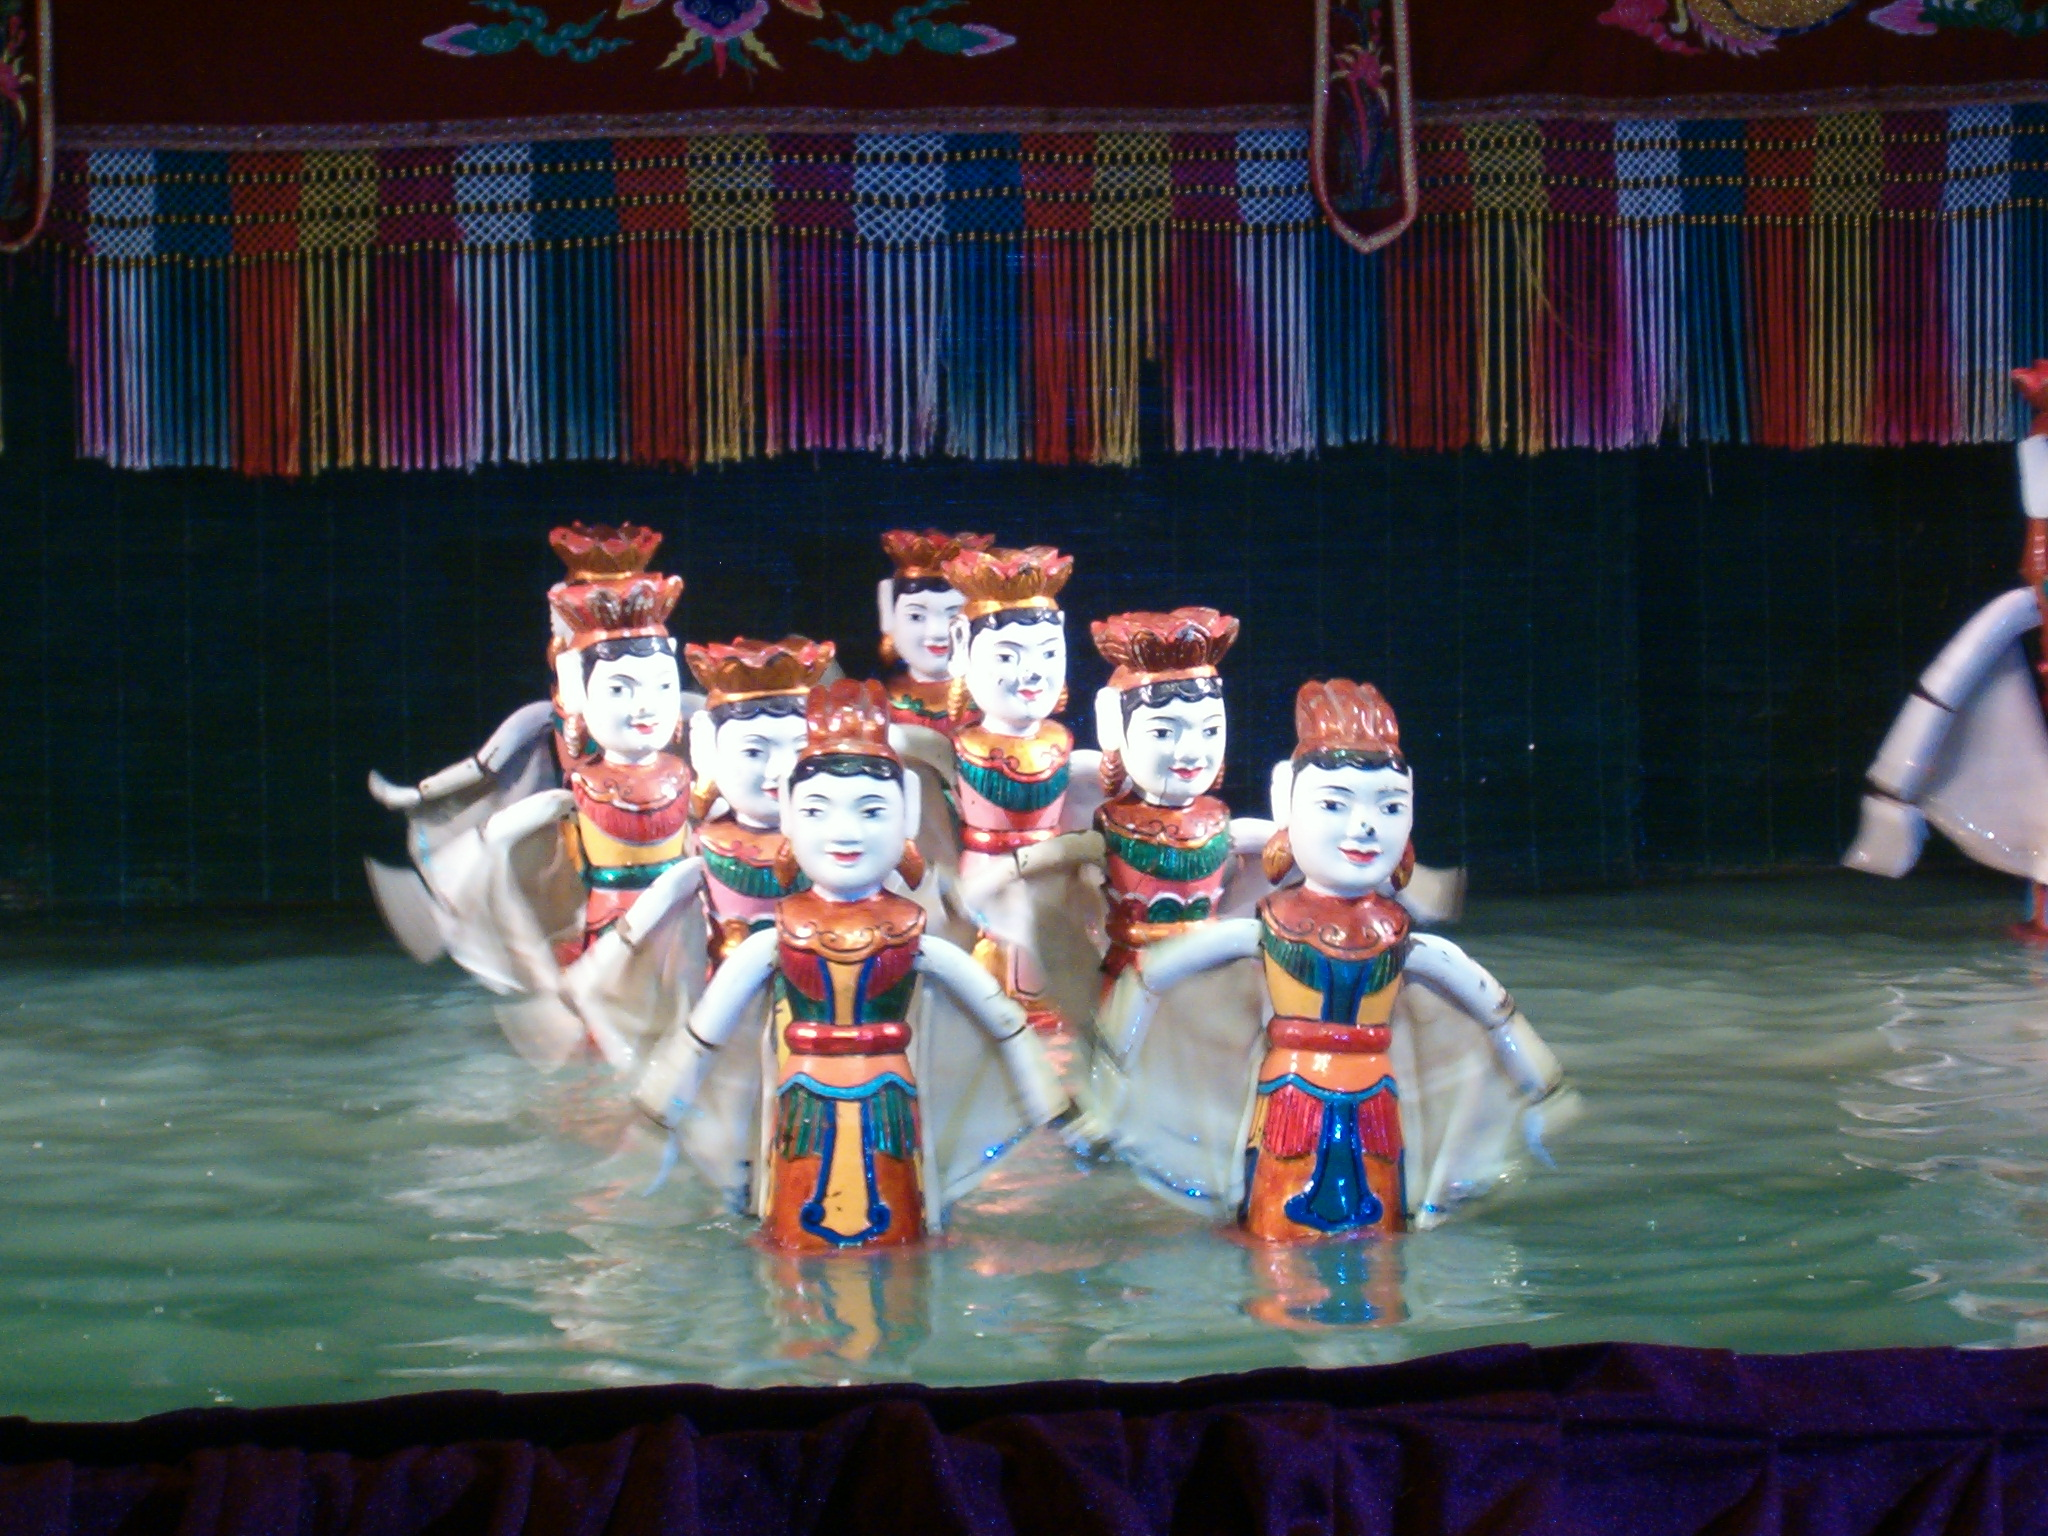 Capture a Performance is the Municipal Water Puppet Theatre in Hanoi